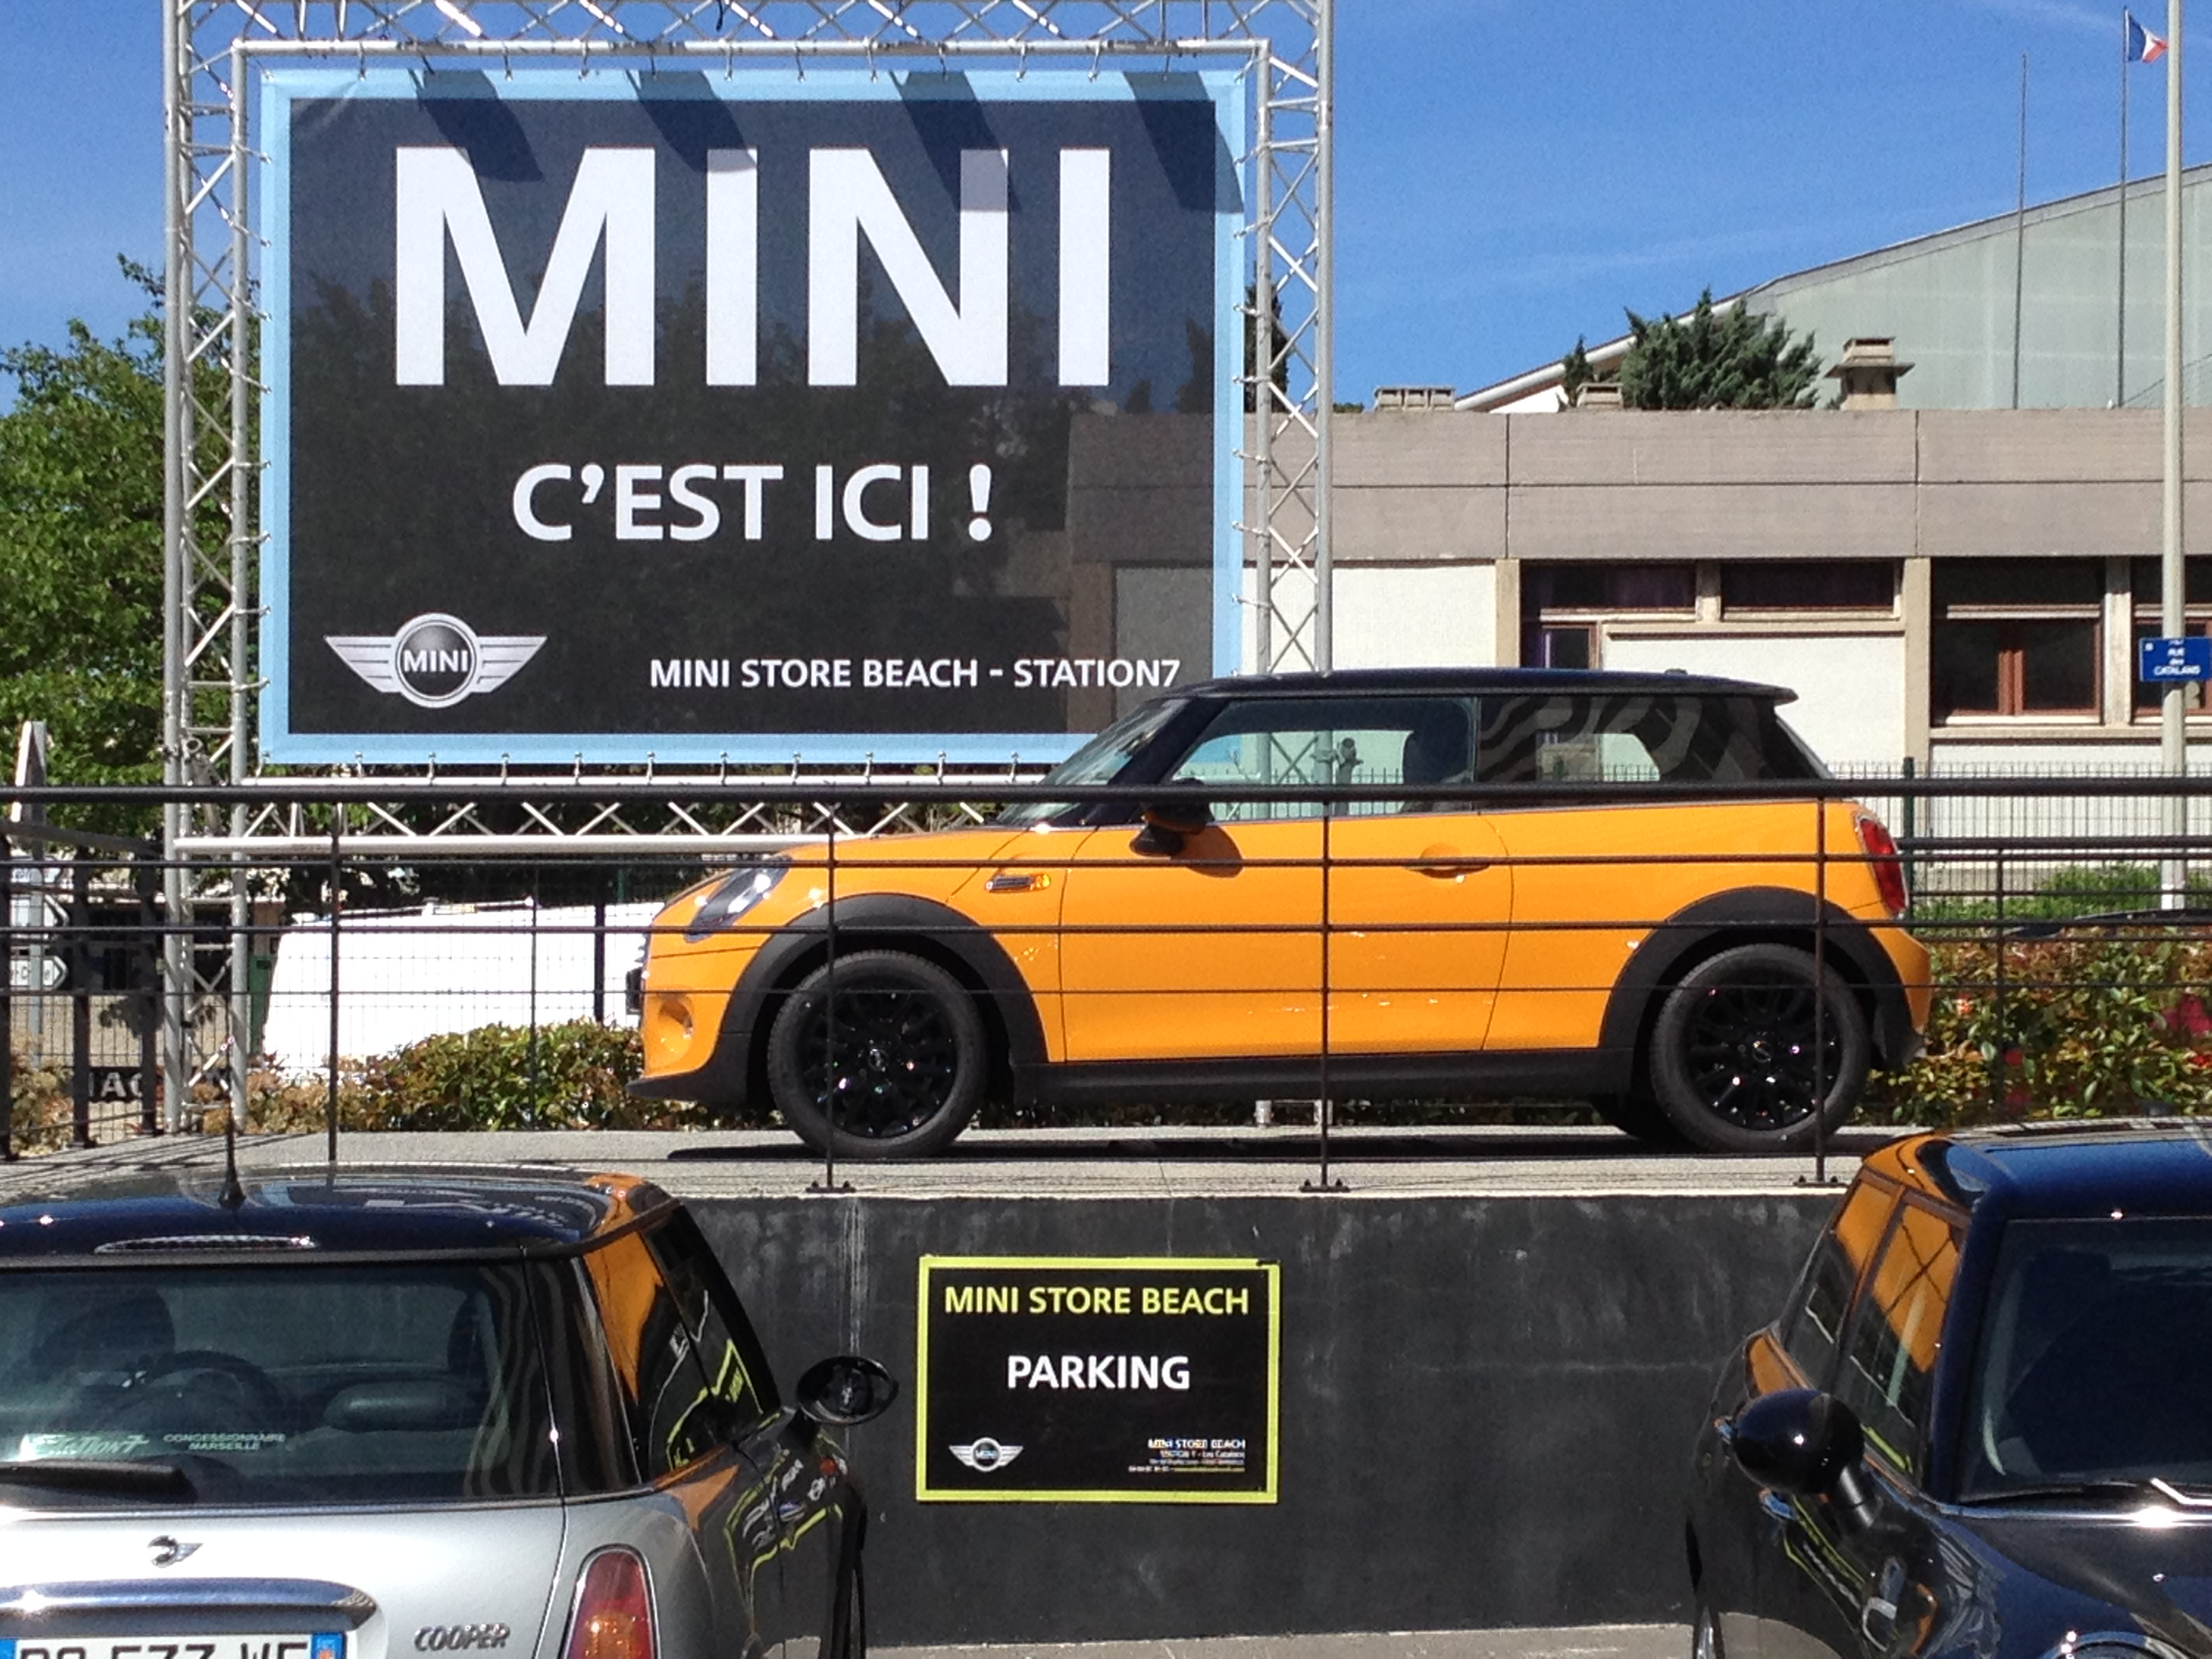 mini store beach catalan concessionnaire mini marseille auto occasion marseille. Black Bedroom Furniture Sets. Home Design Ideas